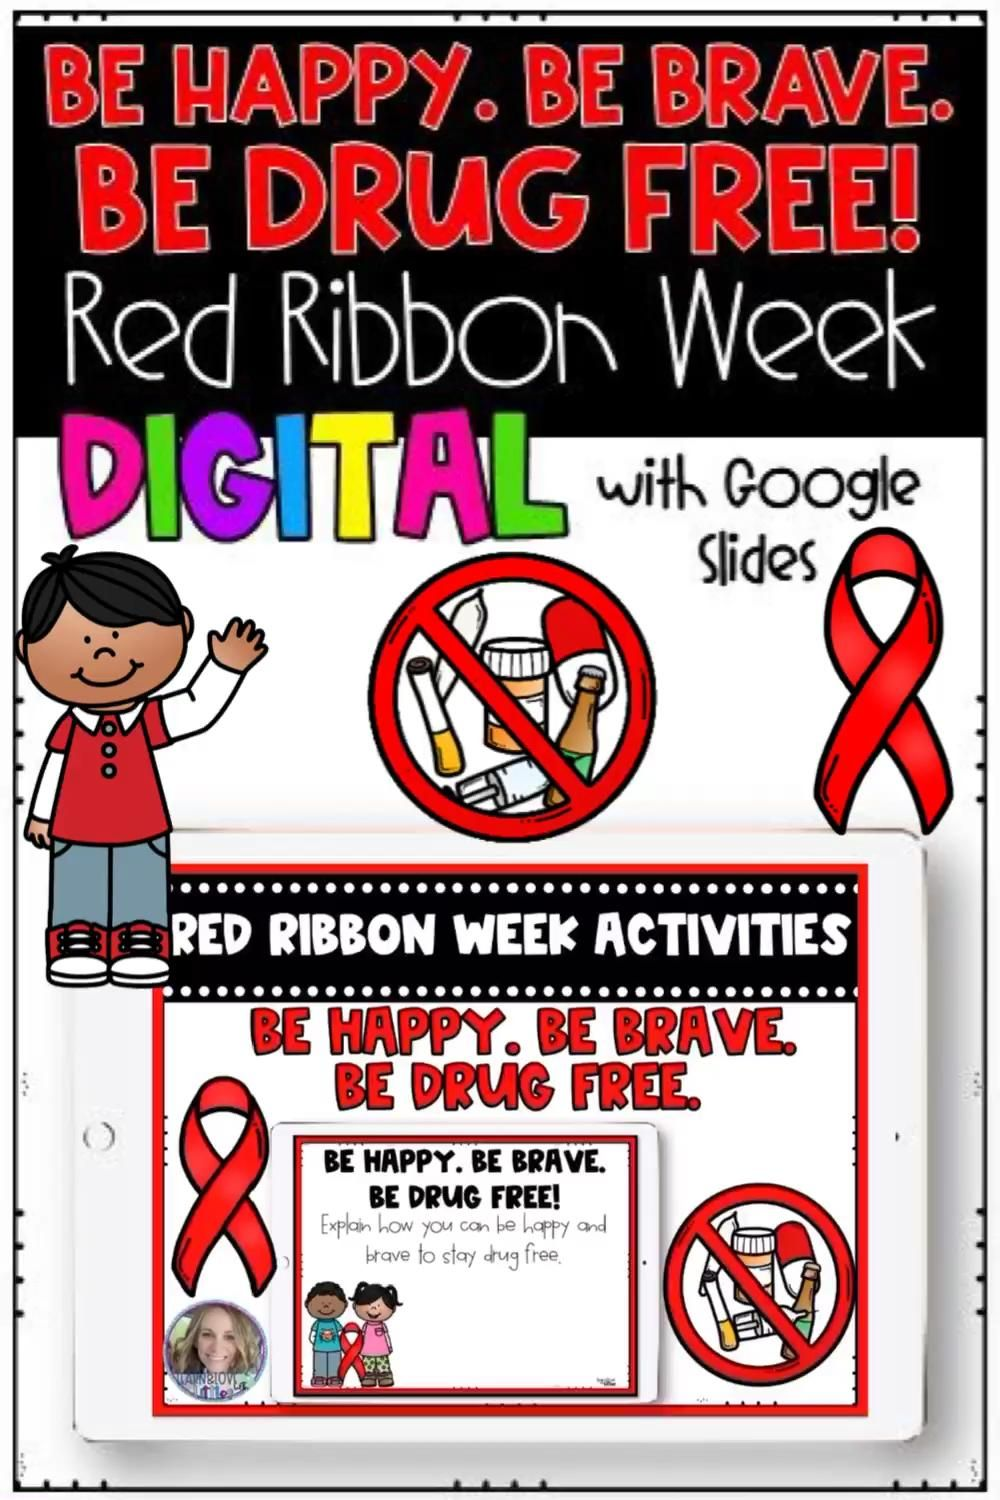 Red Ribbon Week 2020 Be Happy Be Brave Be Drug Free Digital Distance Learning Video Video In 2020 Red Ribbon Week Distance Learning Making Words [ 1500 x 1000 Pixel ]